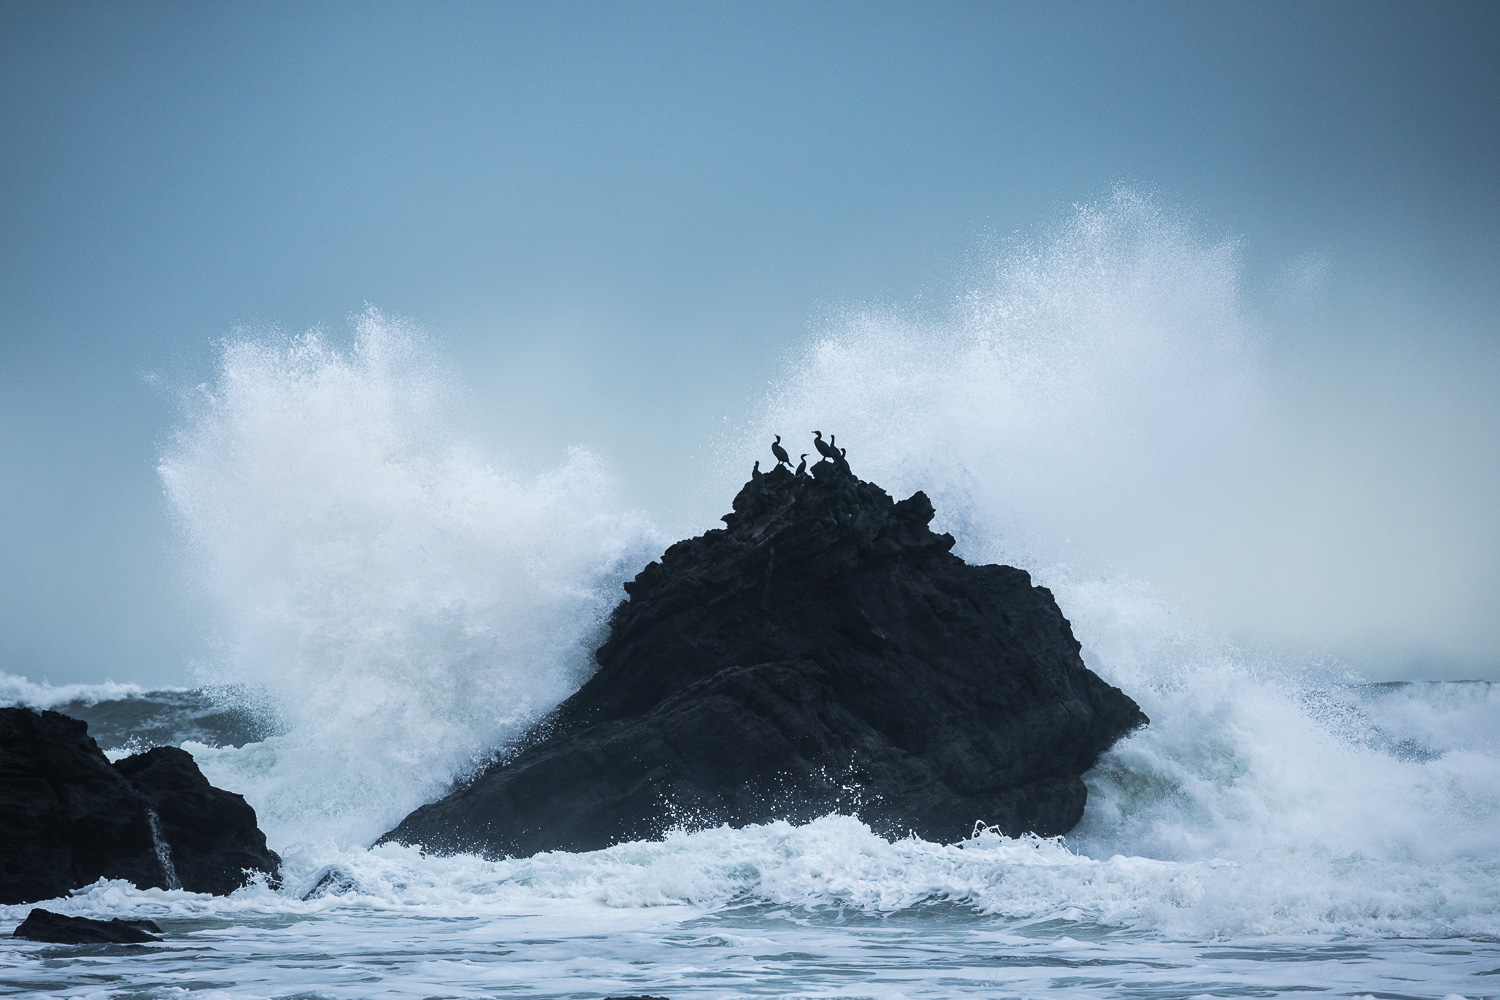 A wave breaks over the rocky shorline of Sombrio Beach. Storm watching is one of my very favourite pastimes and this is one of the best places to chase big waves! I was also impressed by how calmly the cormorants sat atop their precarious perch as well.